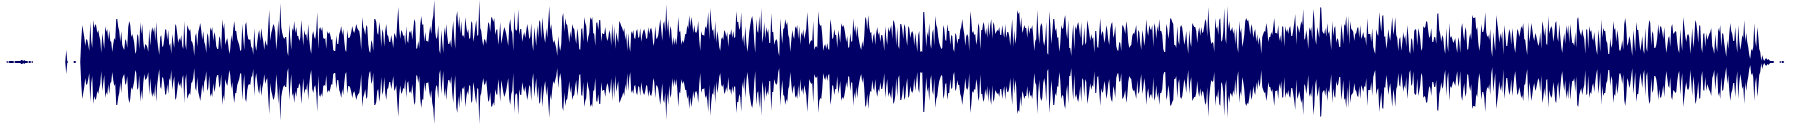 waveform of track #69187